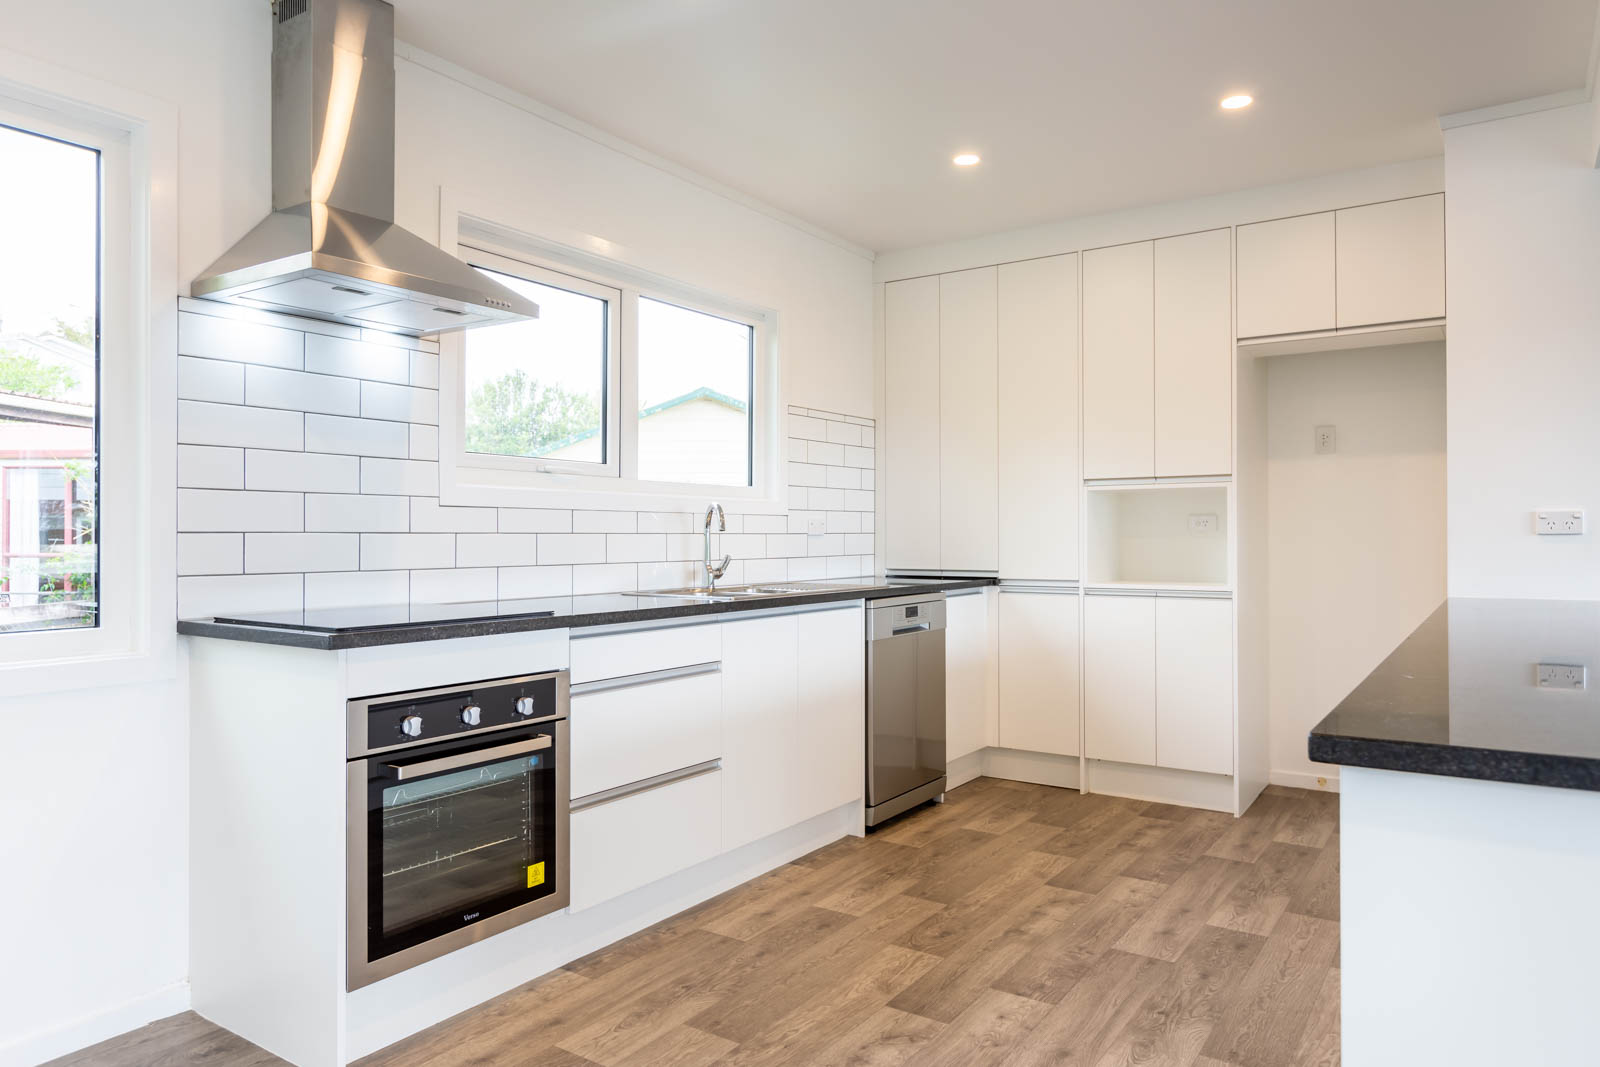 Successful Renovations at Seakens Way Glen Eden